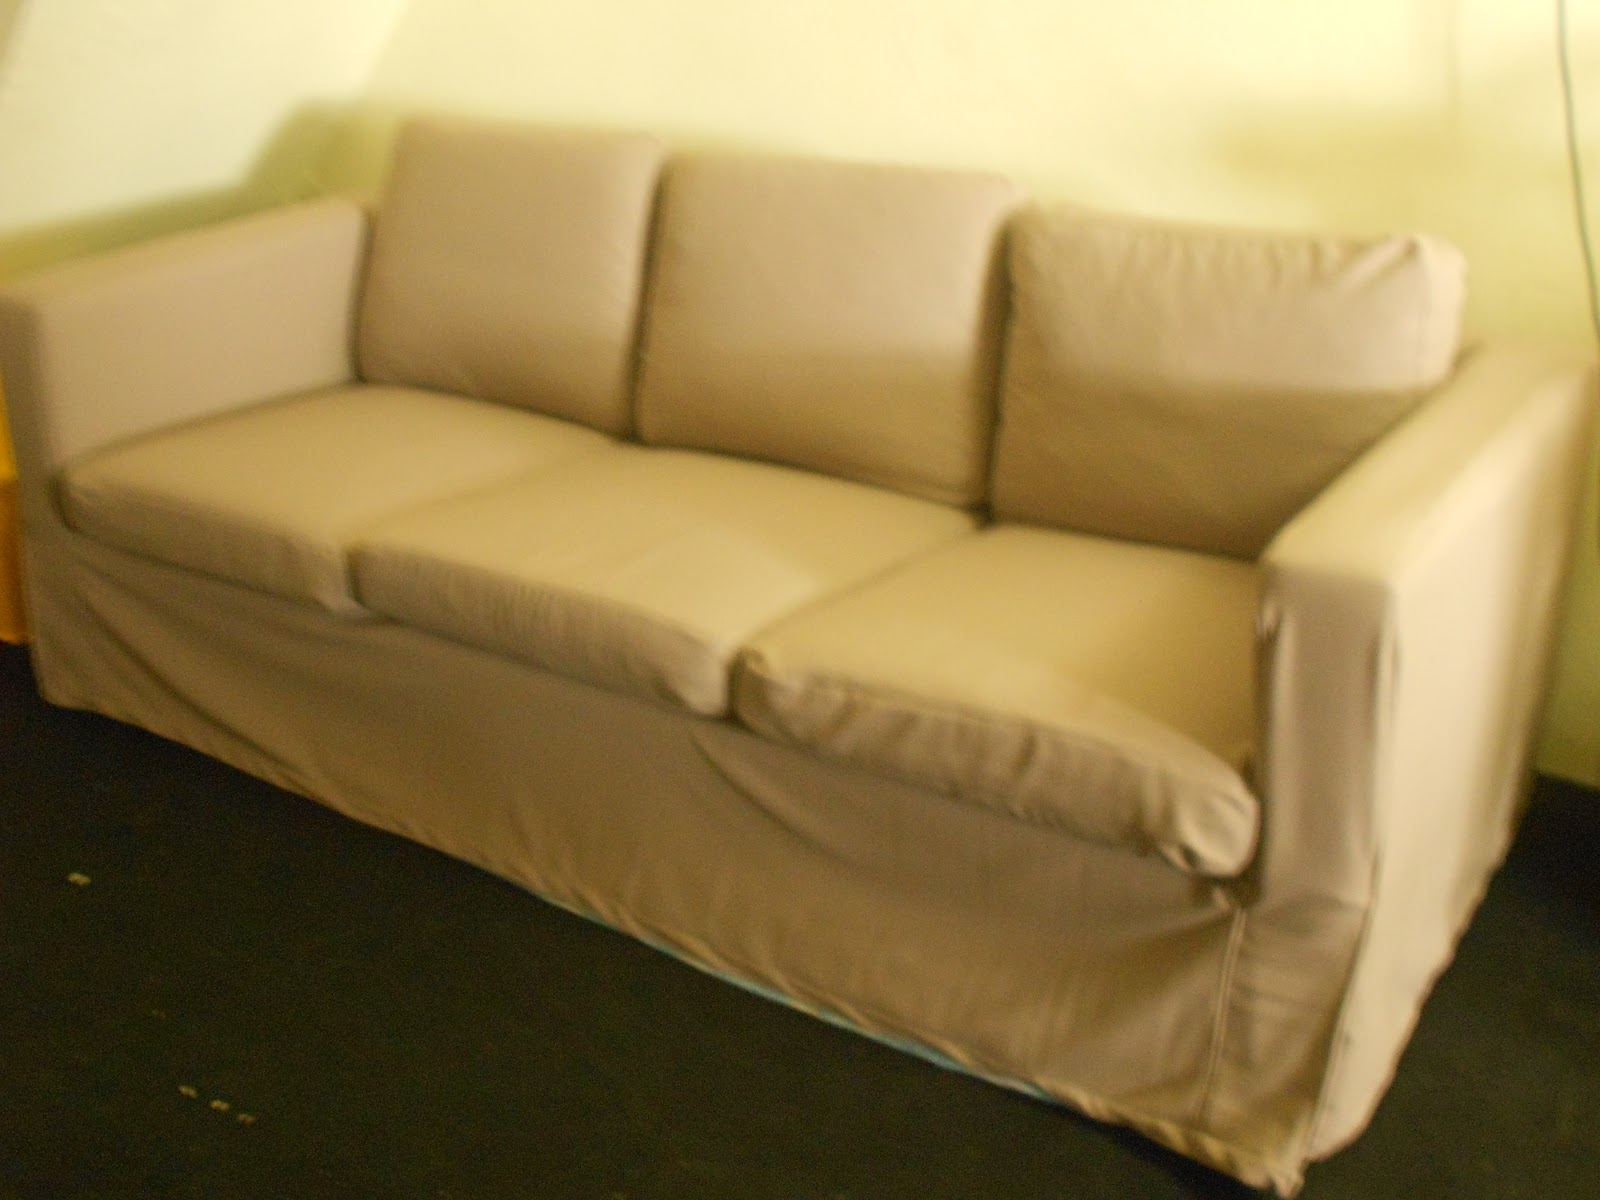 yuhmico DIY Sofa Slip Cover